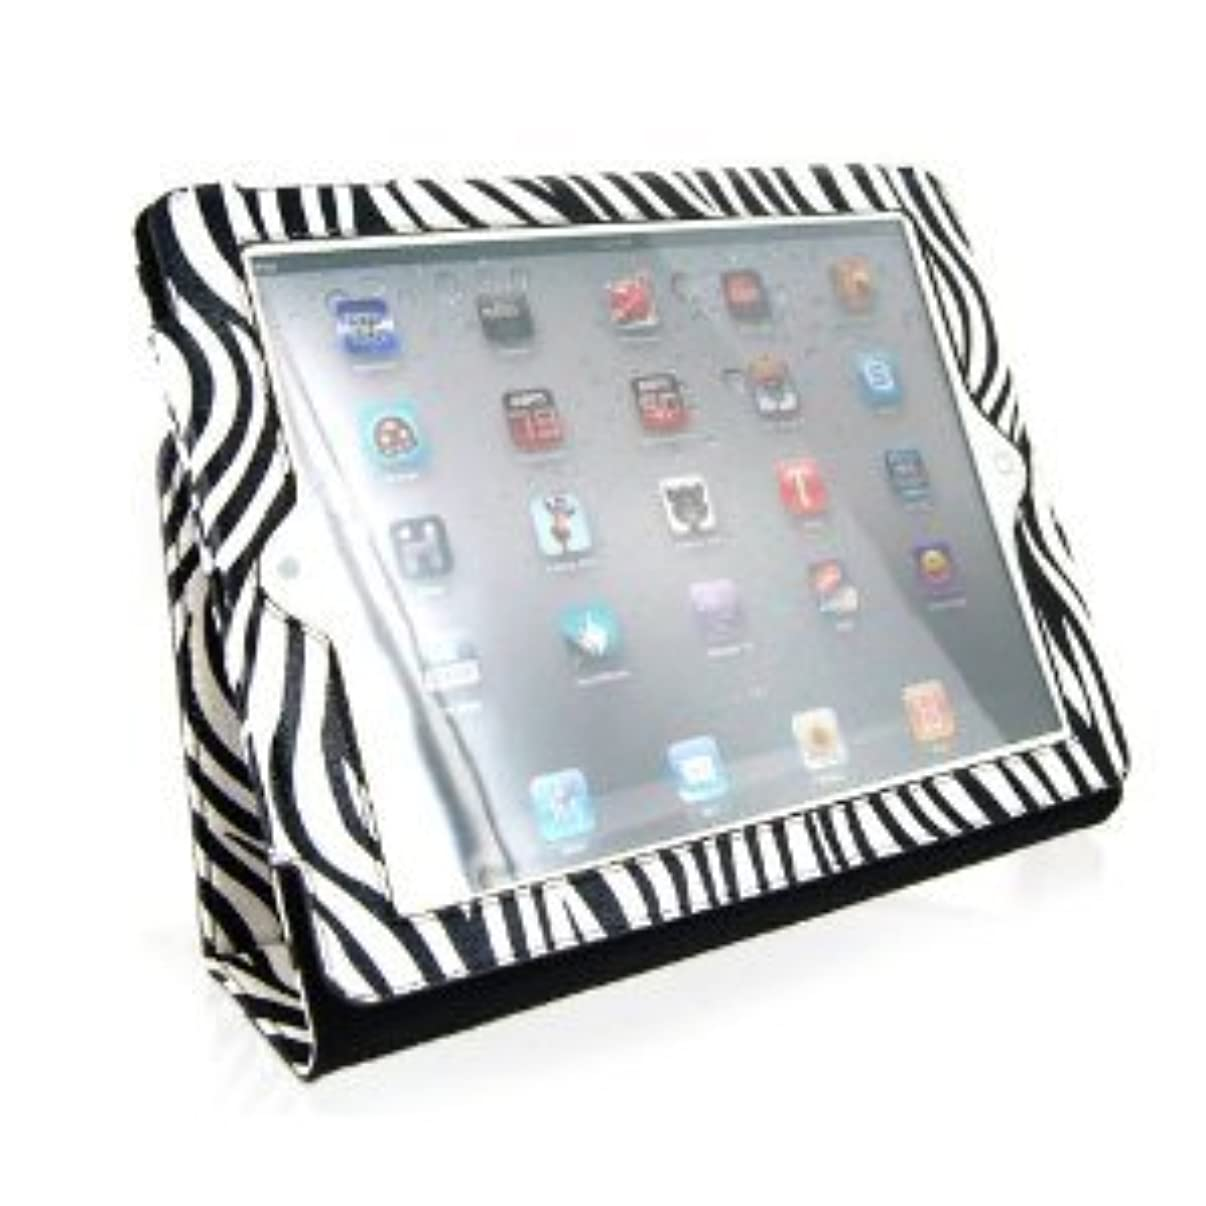 Portfolio Leather Cover Case with Stand / Kickstand and Wake up / Sleep Function (Animal Print : ZEBRA) for Apple iPad2 (iPad 2 2G 2nd Generation) 16GB 32GB 64GB BLACK / WHITE Tablet (Fits both WiFi and 3G Versions) + FREE Screen Protector + Free Screen Protector + Free WirelessGeeks247 Metallic Detachable Touch Screen STYLUS PEN with Anti Dust Plug